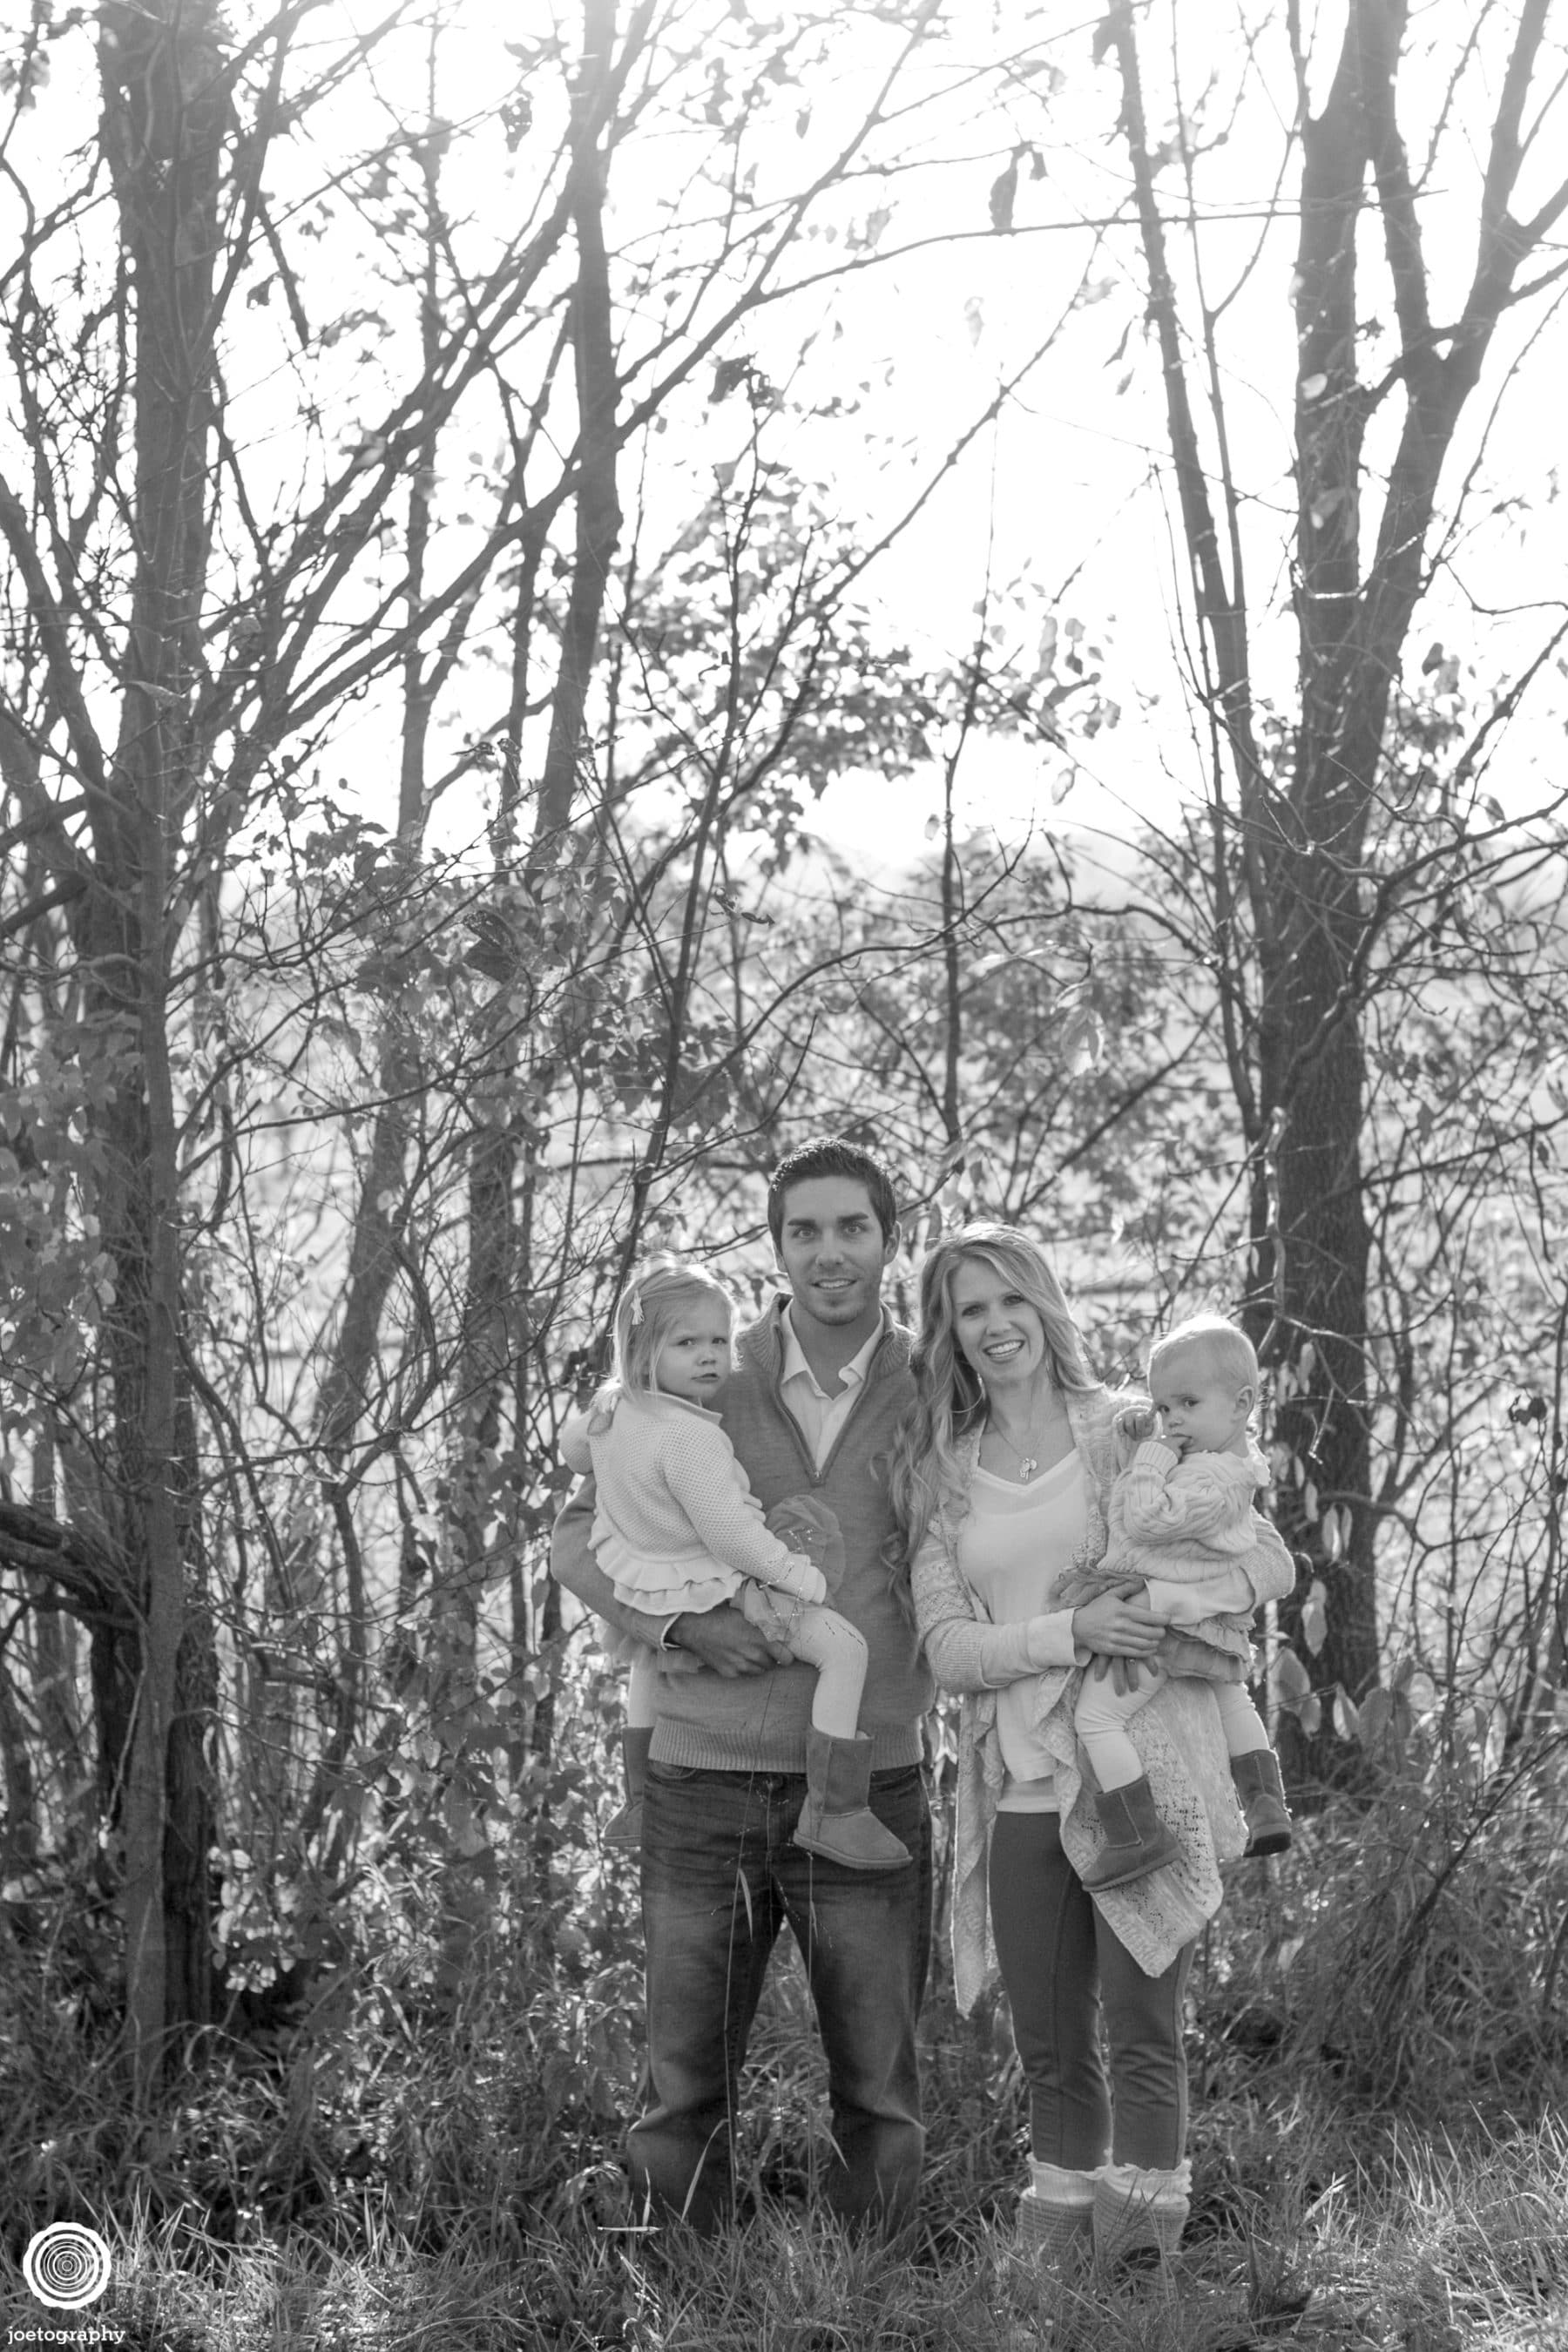 harvey-family-photographs-carmel-indiana-25